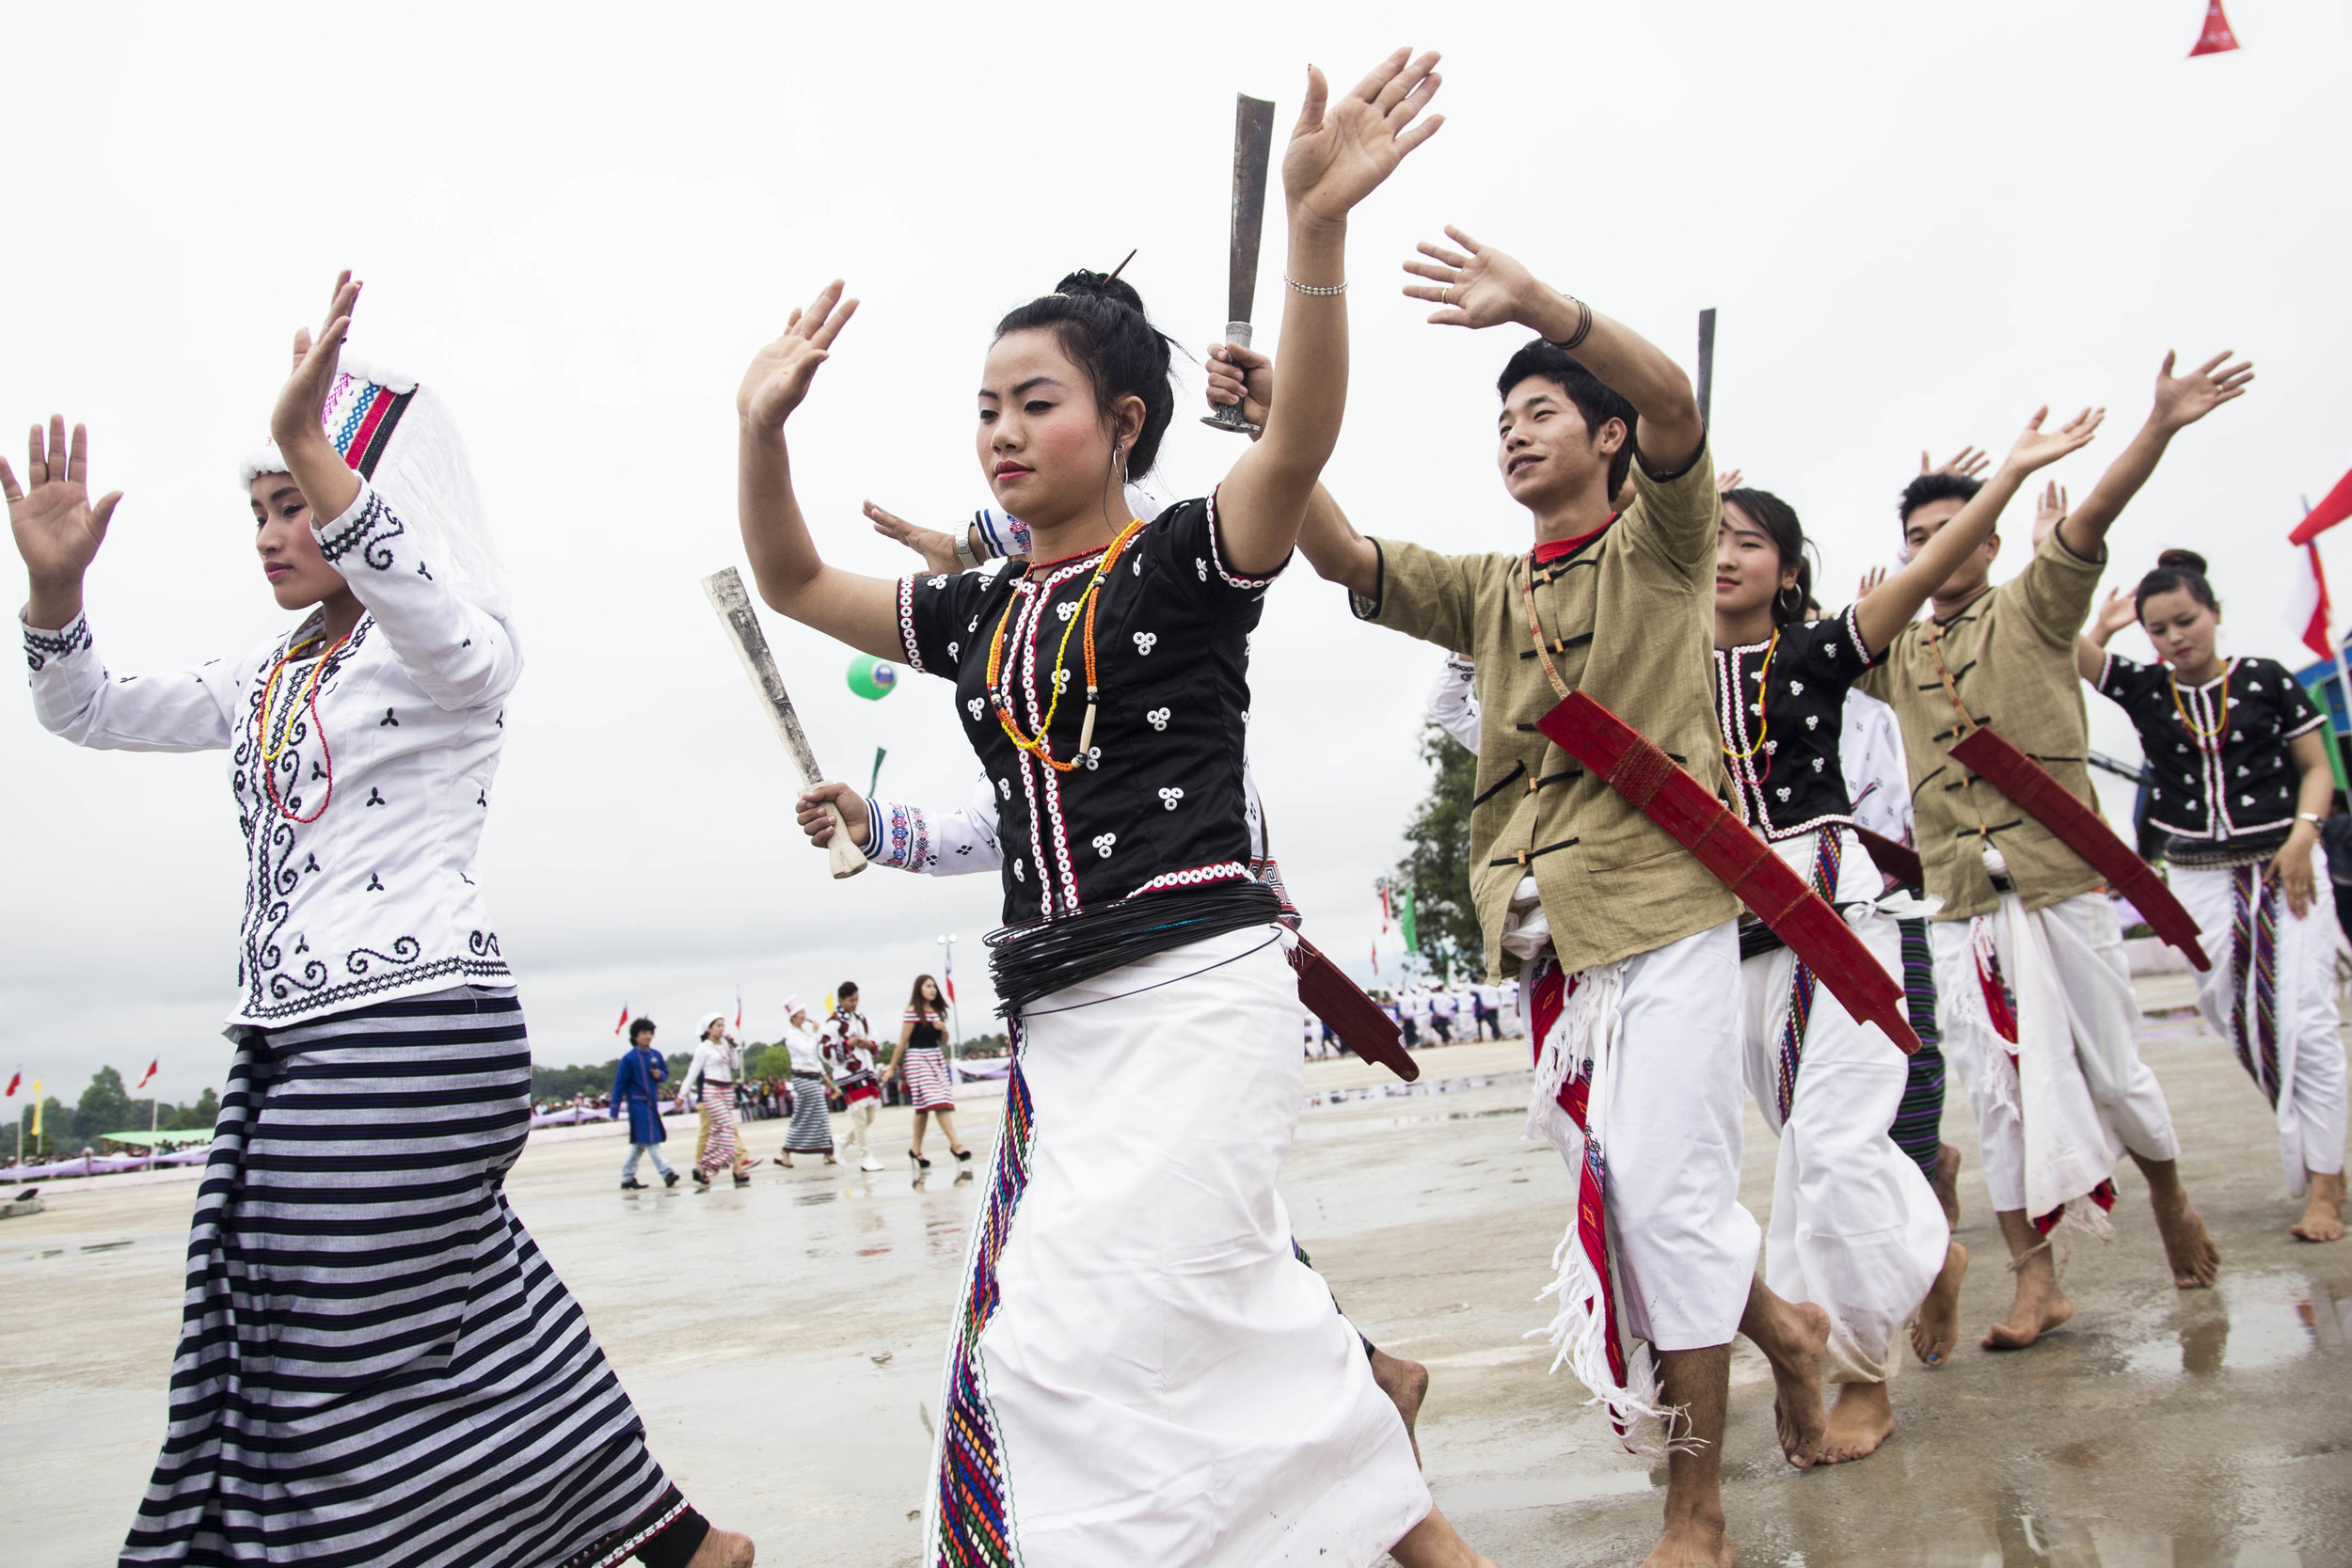 Rawang home-coming festival was held from April 19th to 23rd in Putao. Photo by Ann Wang